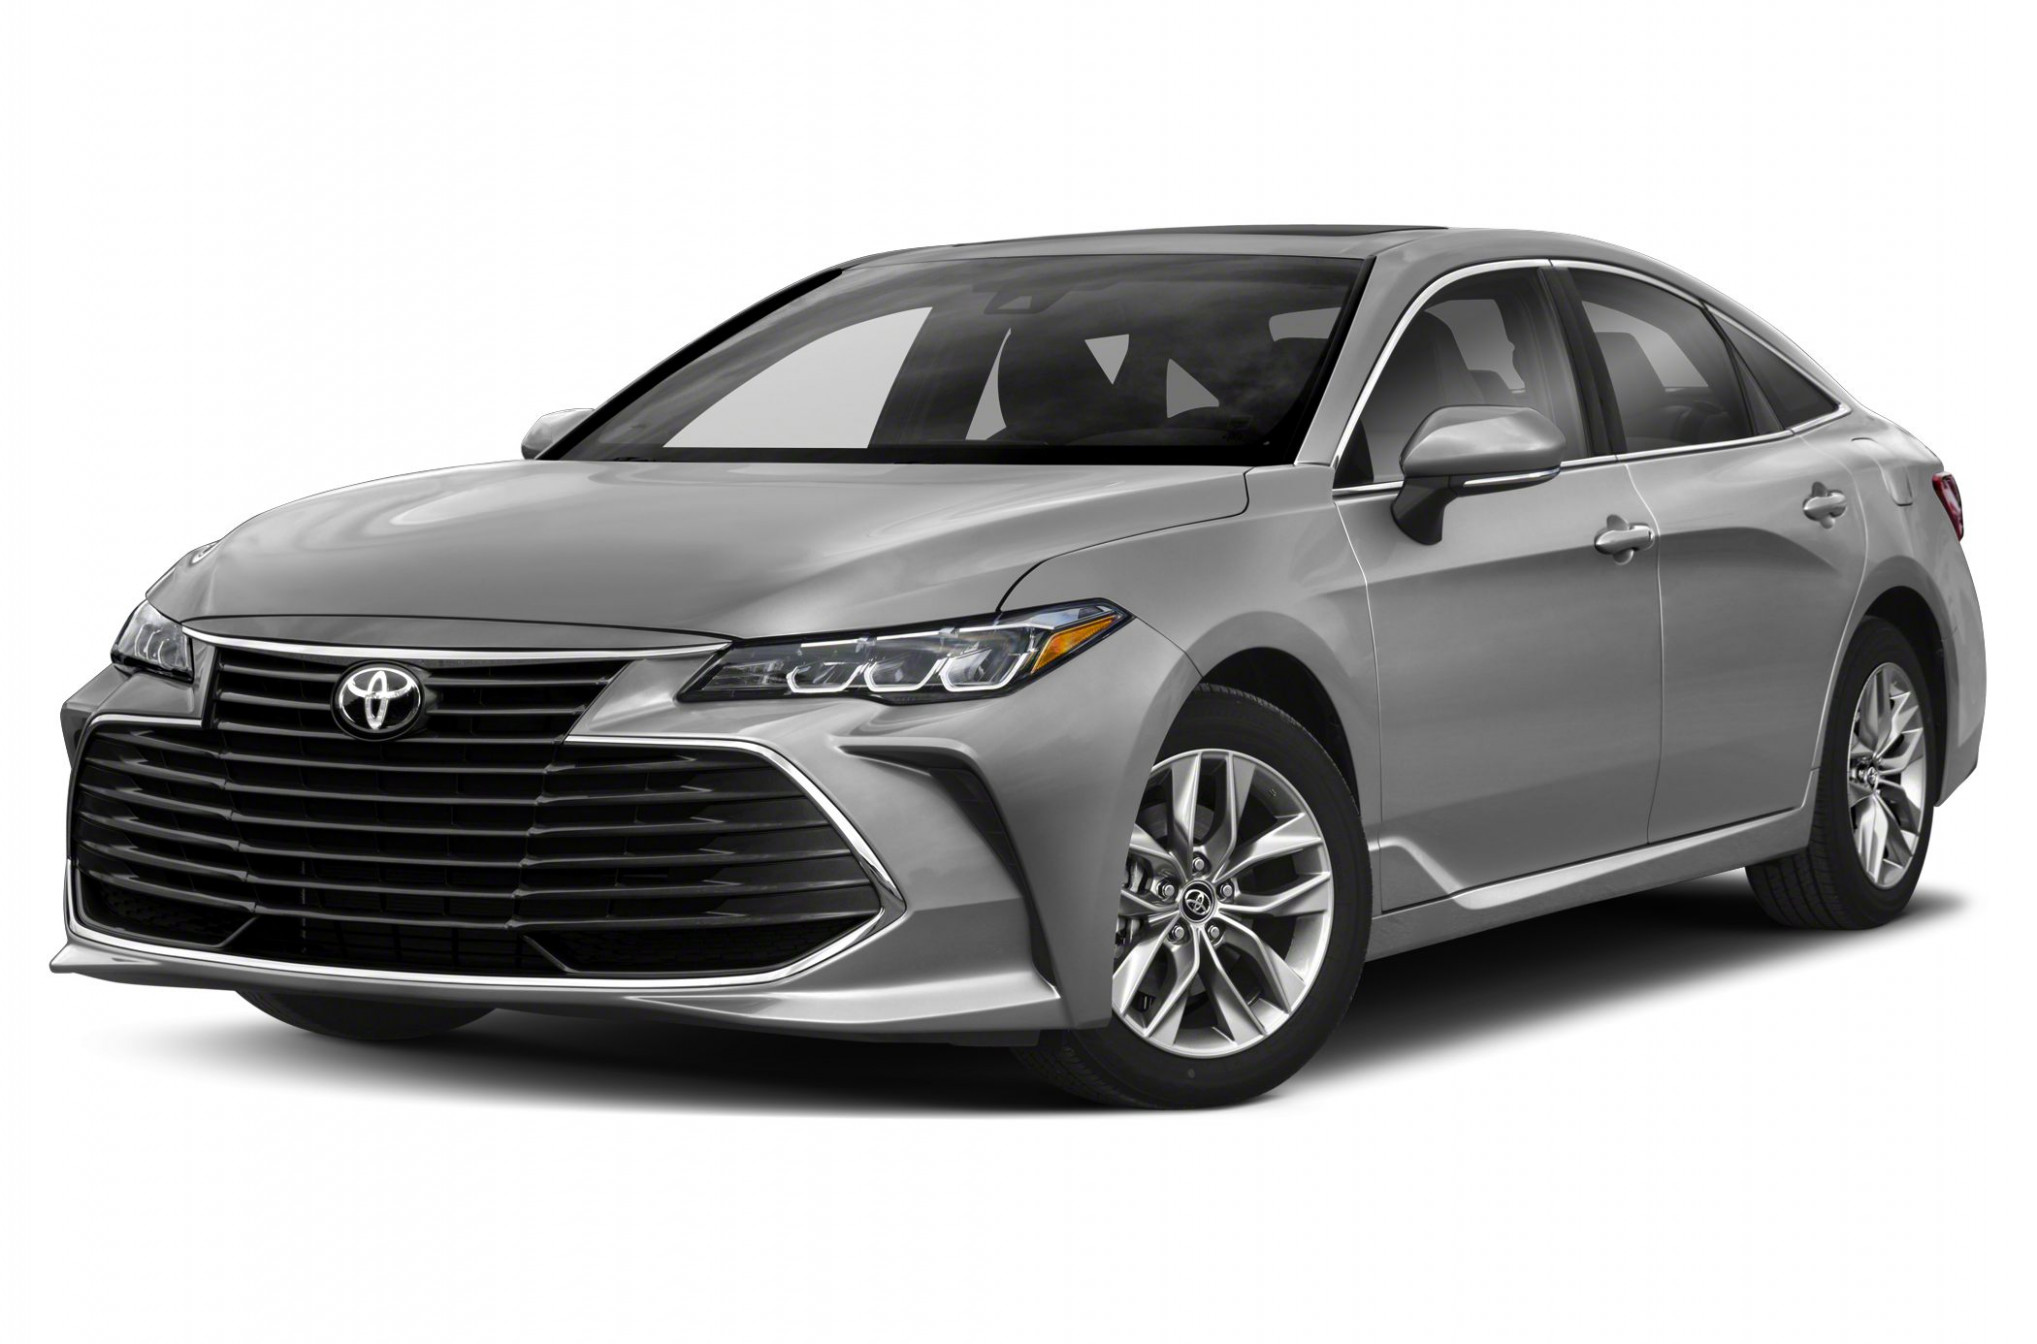 11 Toyota Avalon Limited 11dr Sedan Pricing and Options | 2020 Toyota Avalon Colors